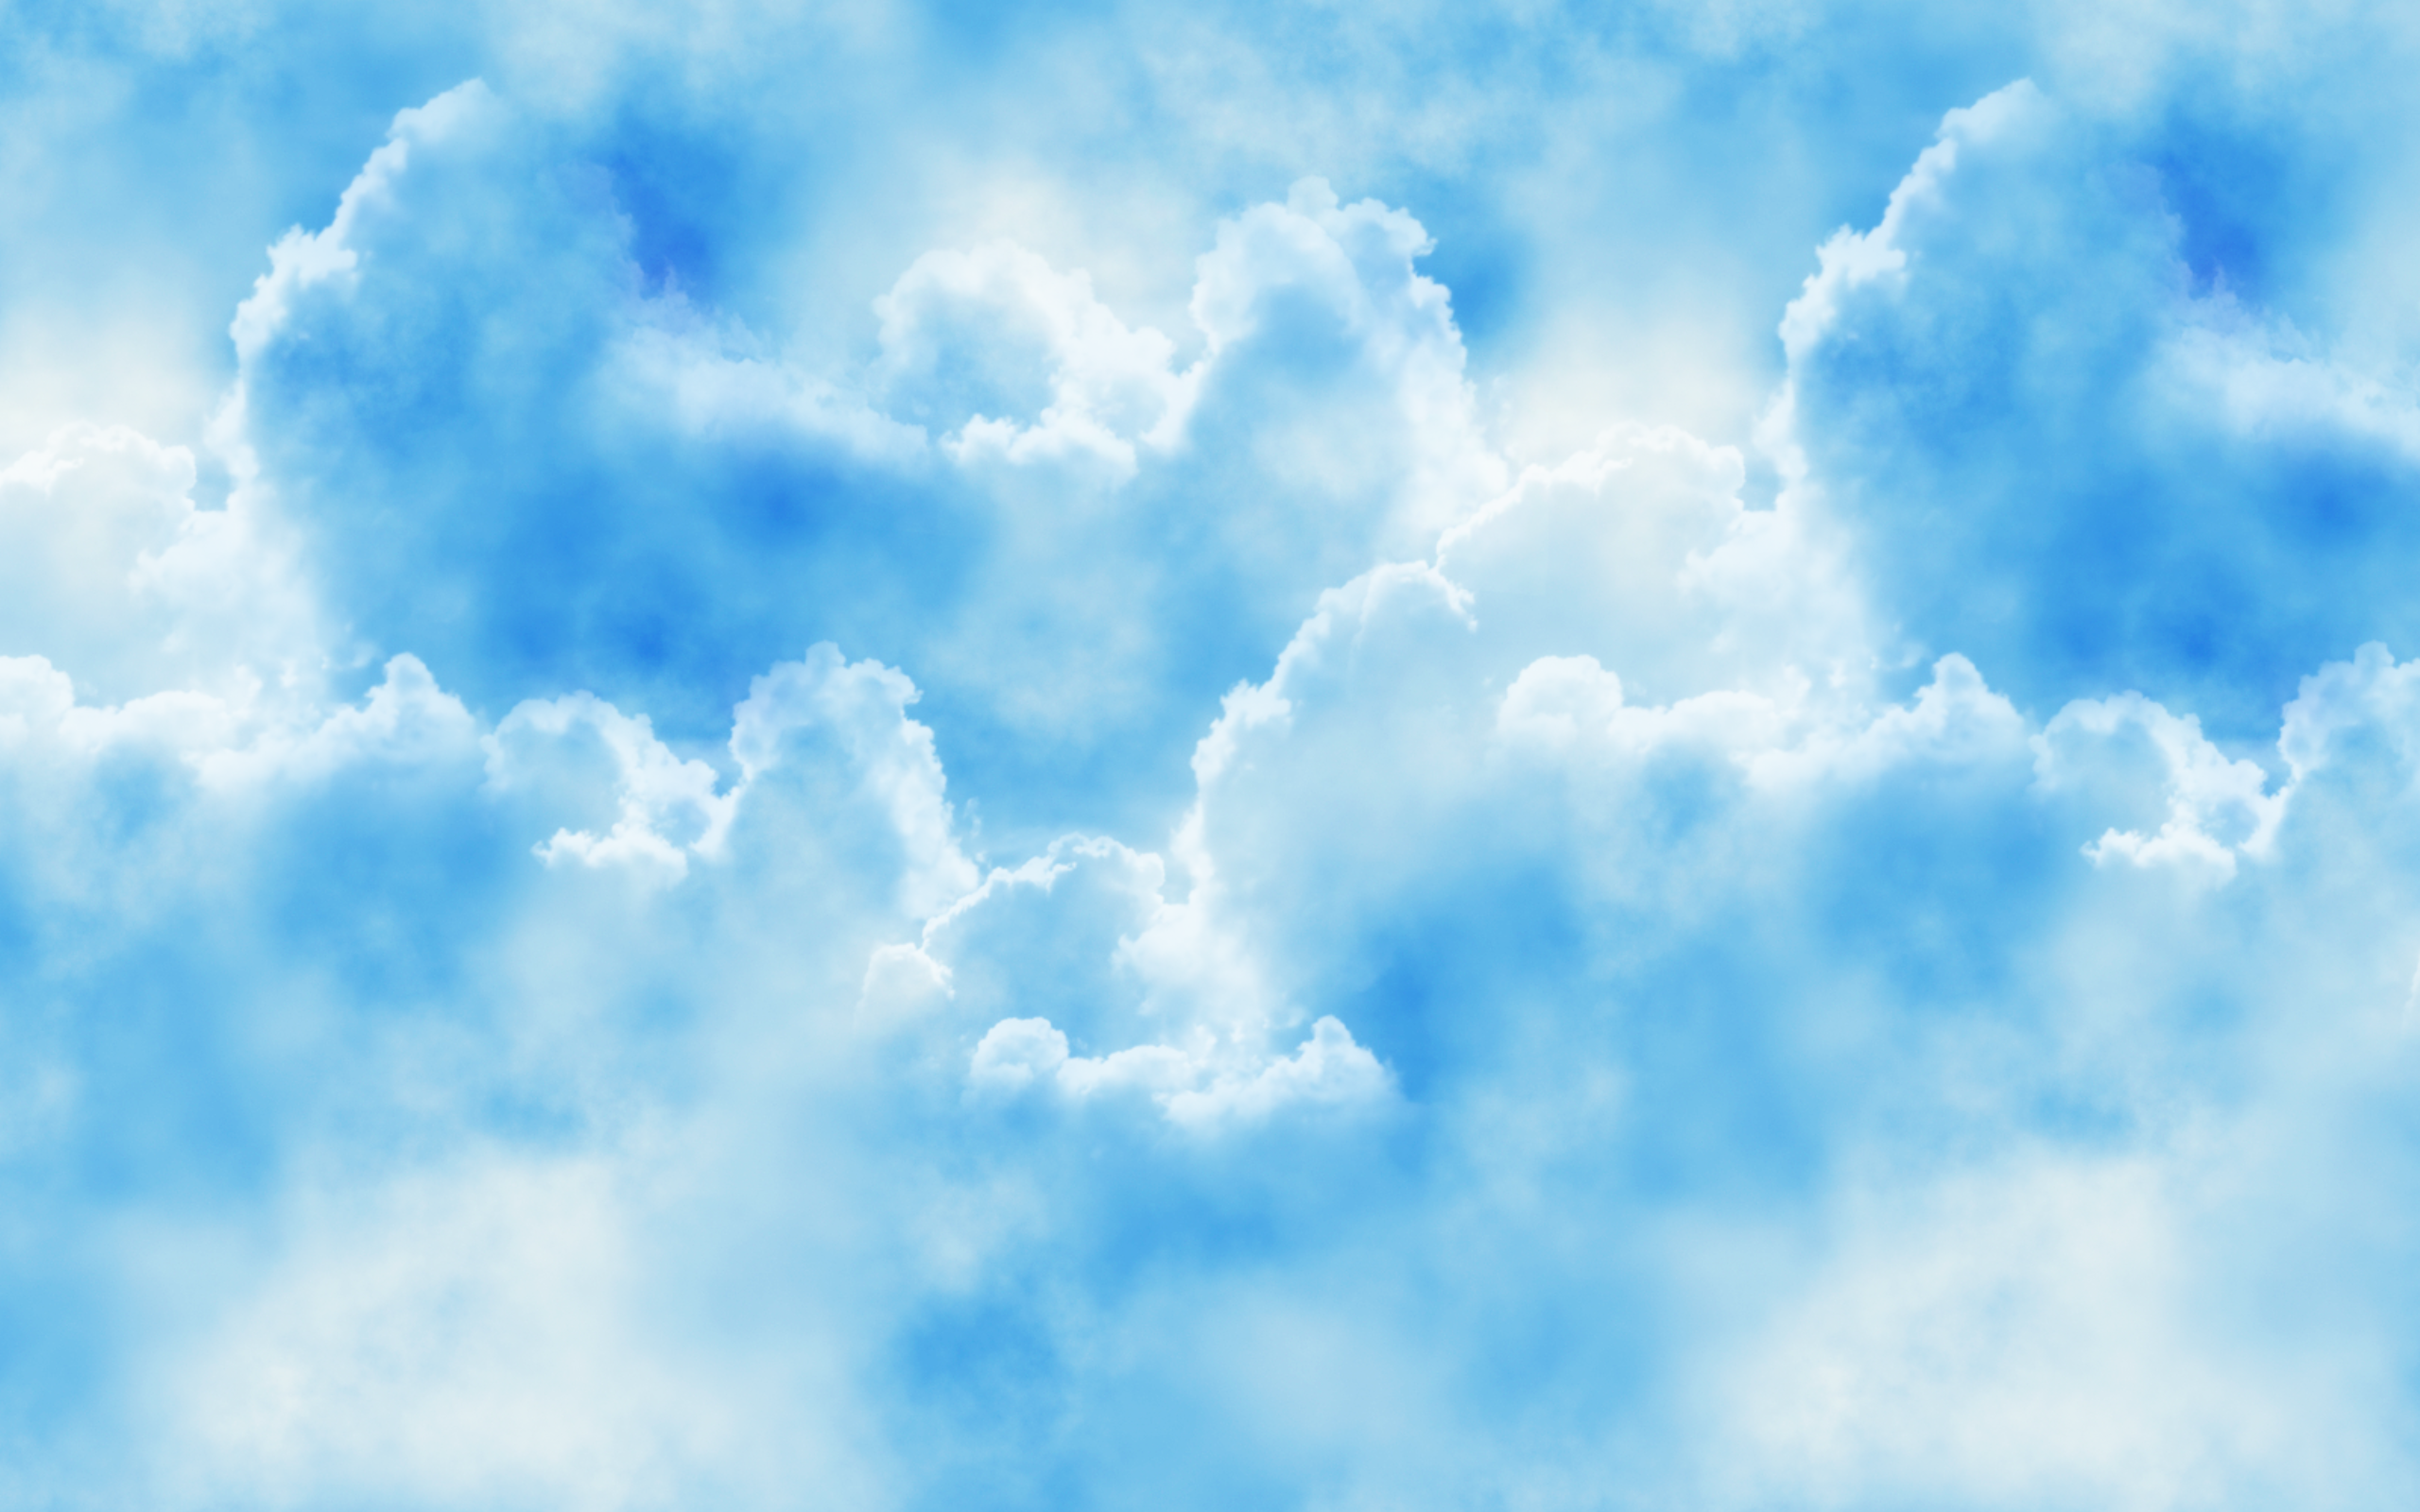 White Clouds In Blue Sky Hd Wallpaper Background Image